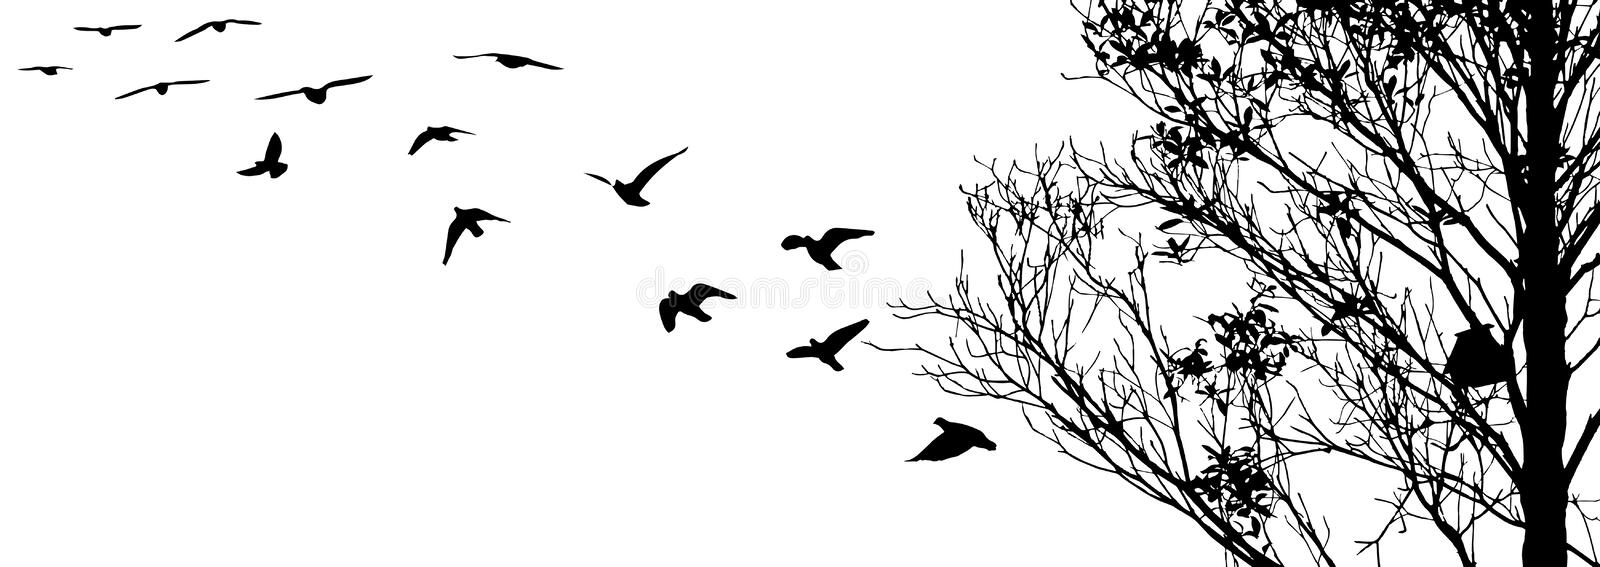 Flying birds and branch silhouettes on white background royalty free illustration